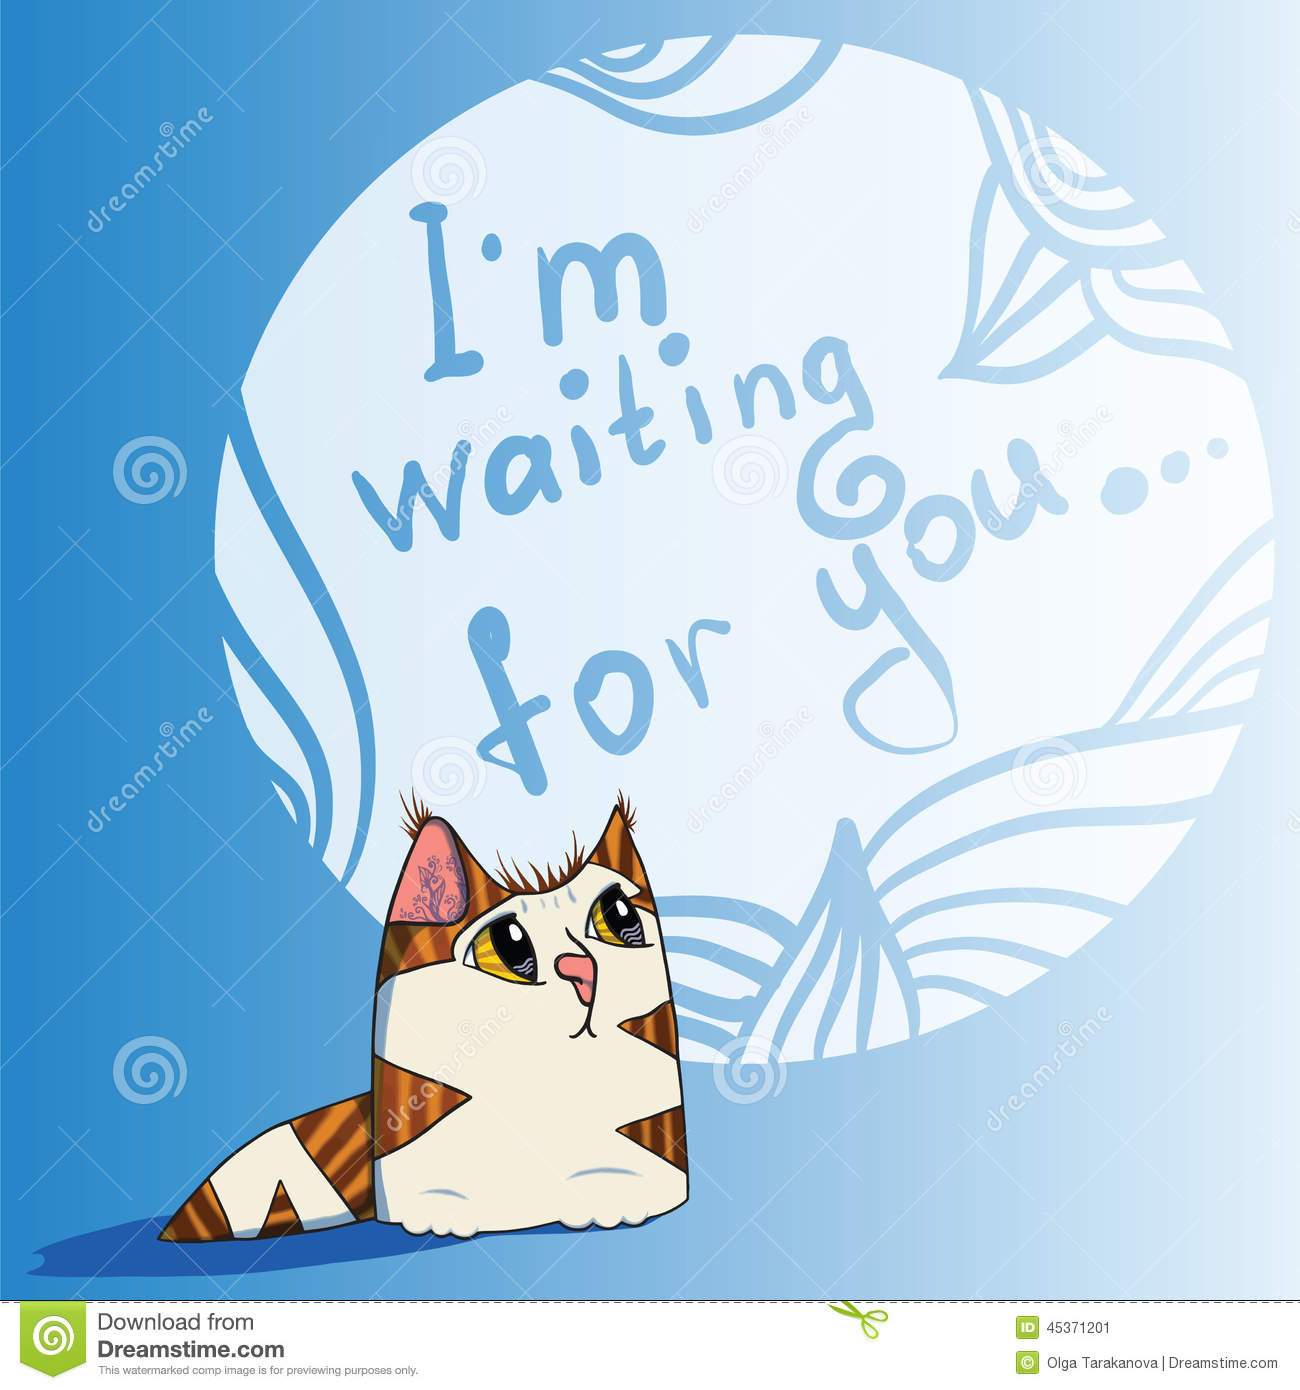 People Waiting Clip Art Related Keywords & Suggestions - People ...